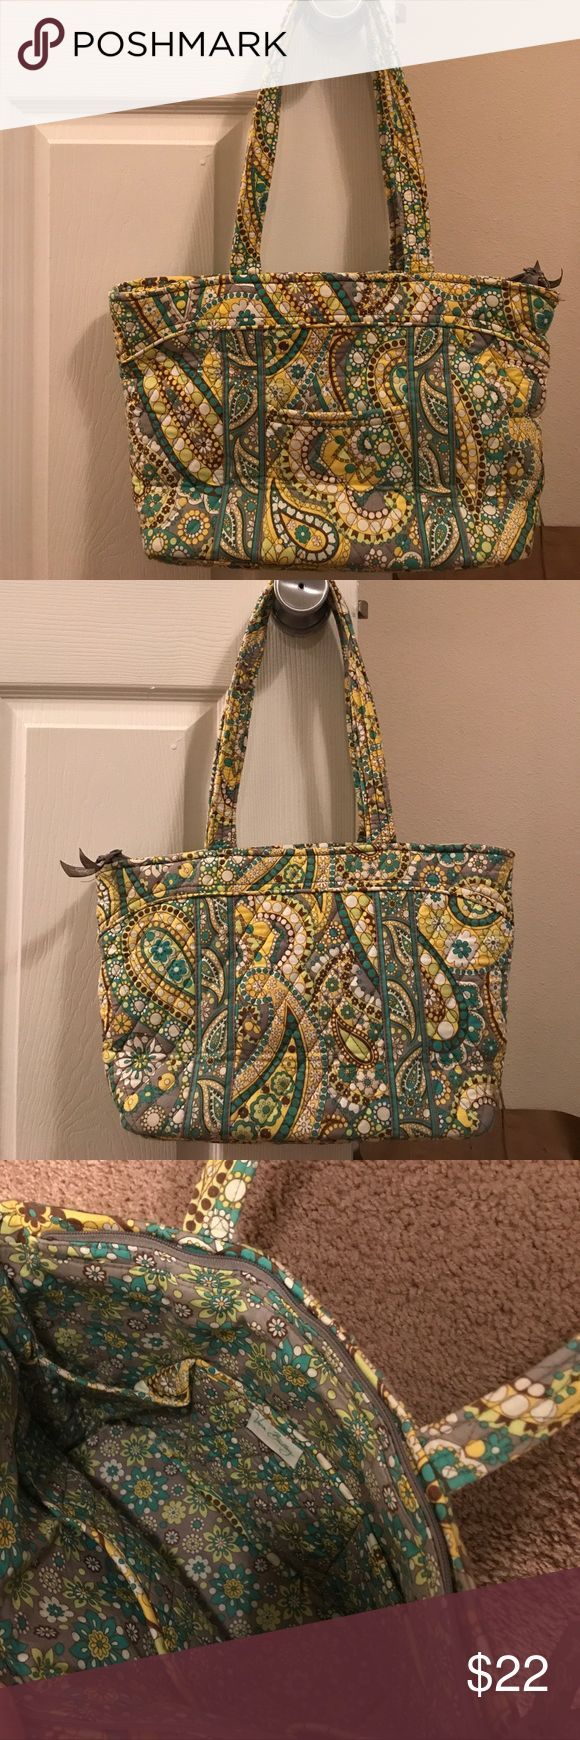 Vera Bradley medium sized handbag purse EXCELLENT barely used condition. Zero interior or exterior flaws. Lovely summer/spring pattern! One exterior pocket, zipper closure at top of bag, and 6 interior pockets. Smoke free home Vera Bradley Bags Shoulder Bags